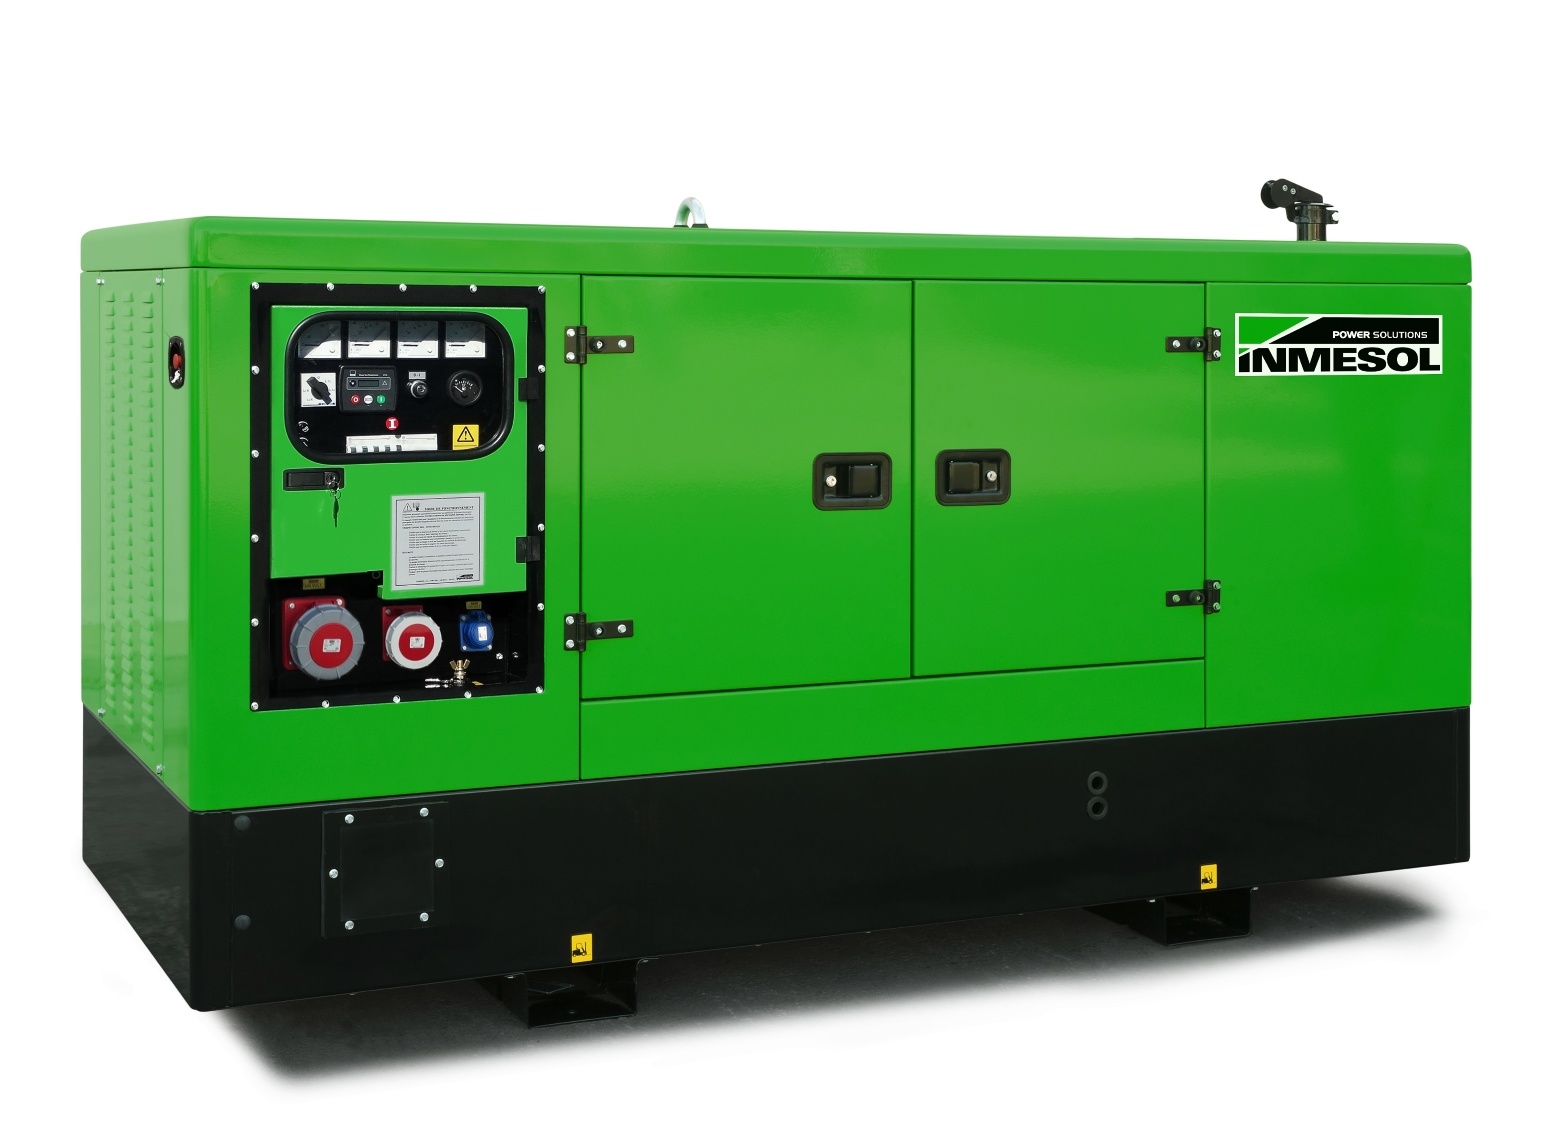 Generator with manual control panel.ID-050 - DEUTZ - BF4M2011(60HZ) - 1.800 R.P.M. | 60 Hz